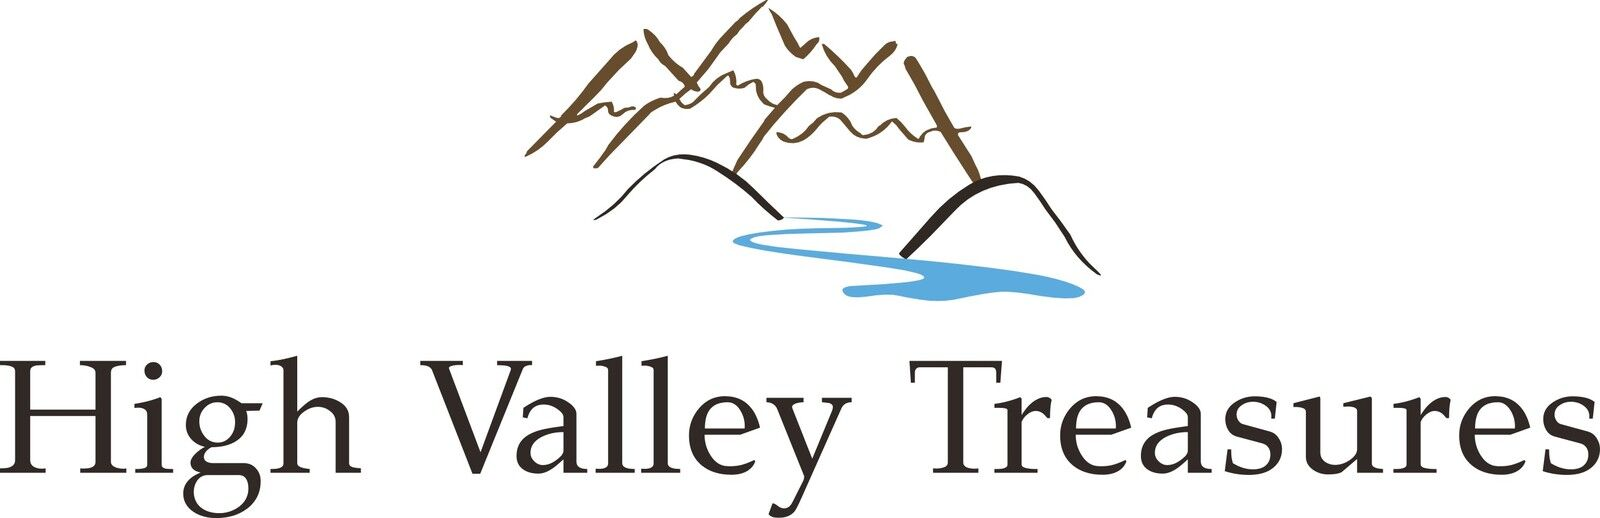 High Valley Treasures